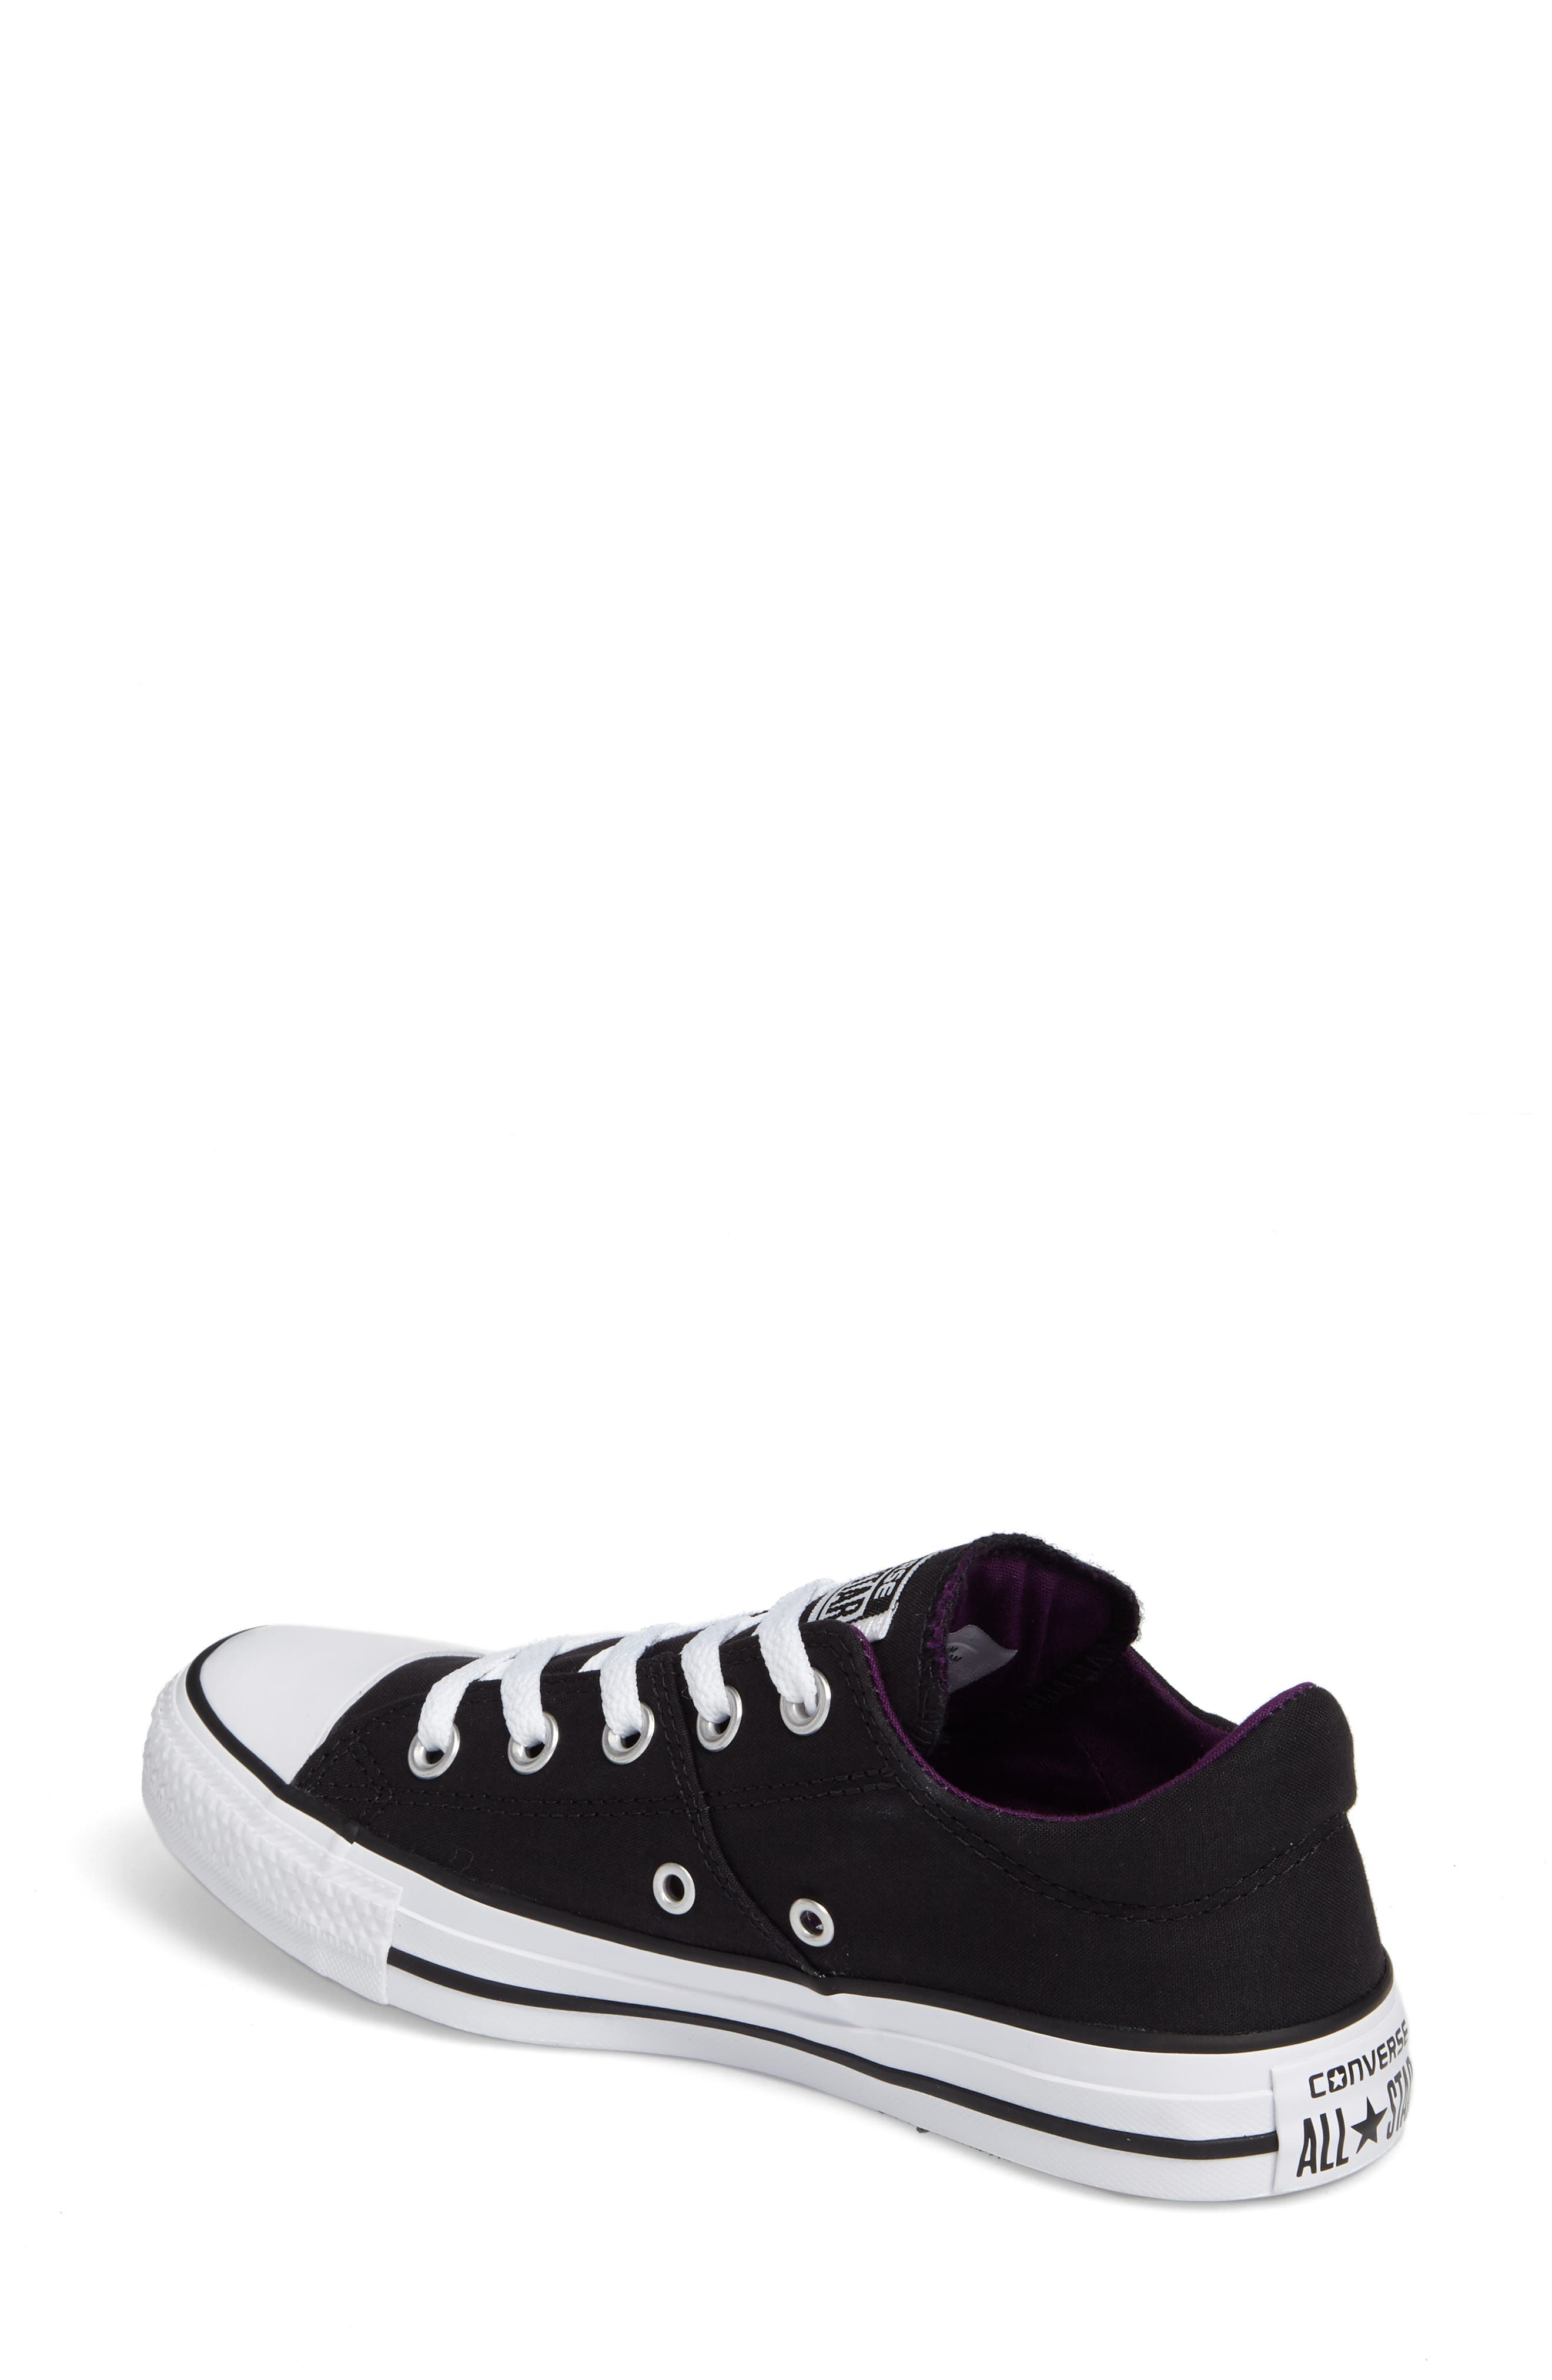 Chuck Taylor<sup>®</sup> All Star<sup>®</sup> Madison Low Top Sneaker,                             Alternate thumbnail 2, color,                             002